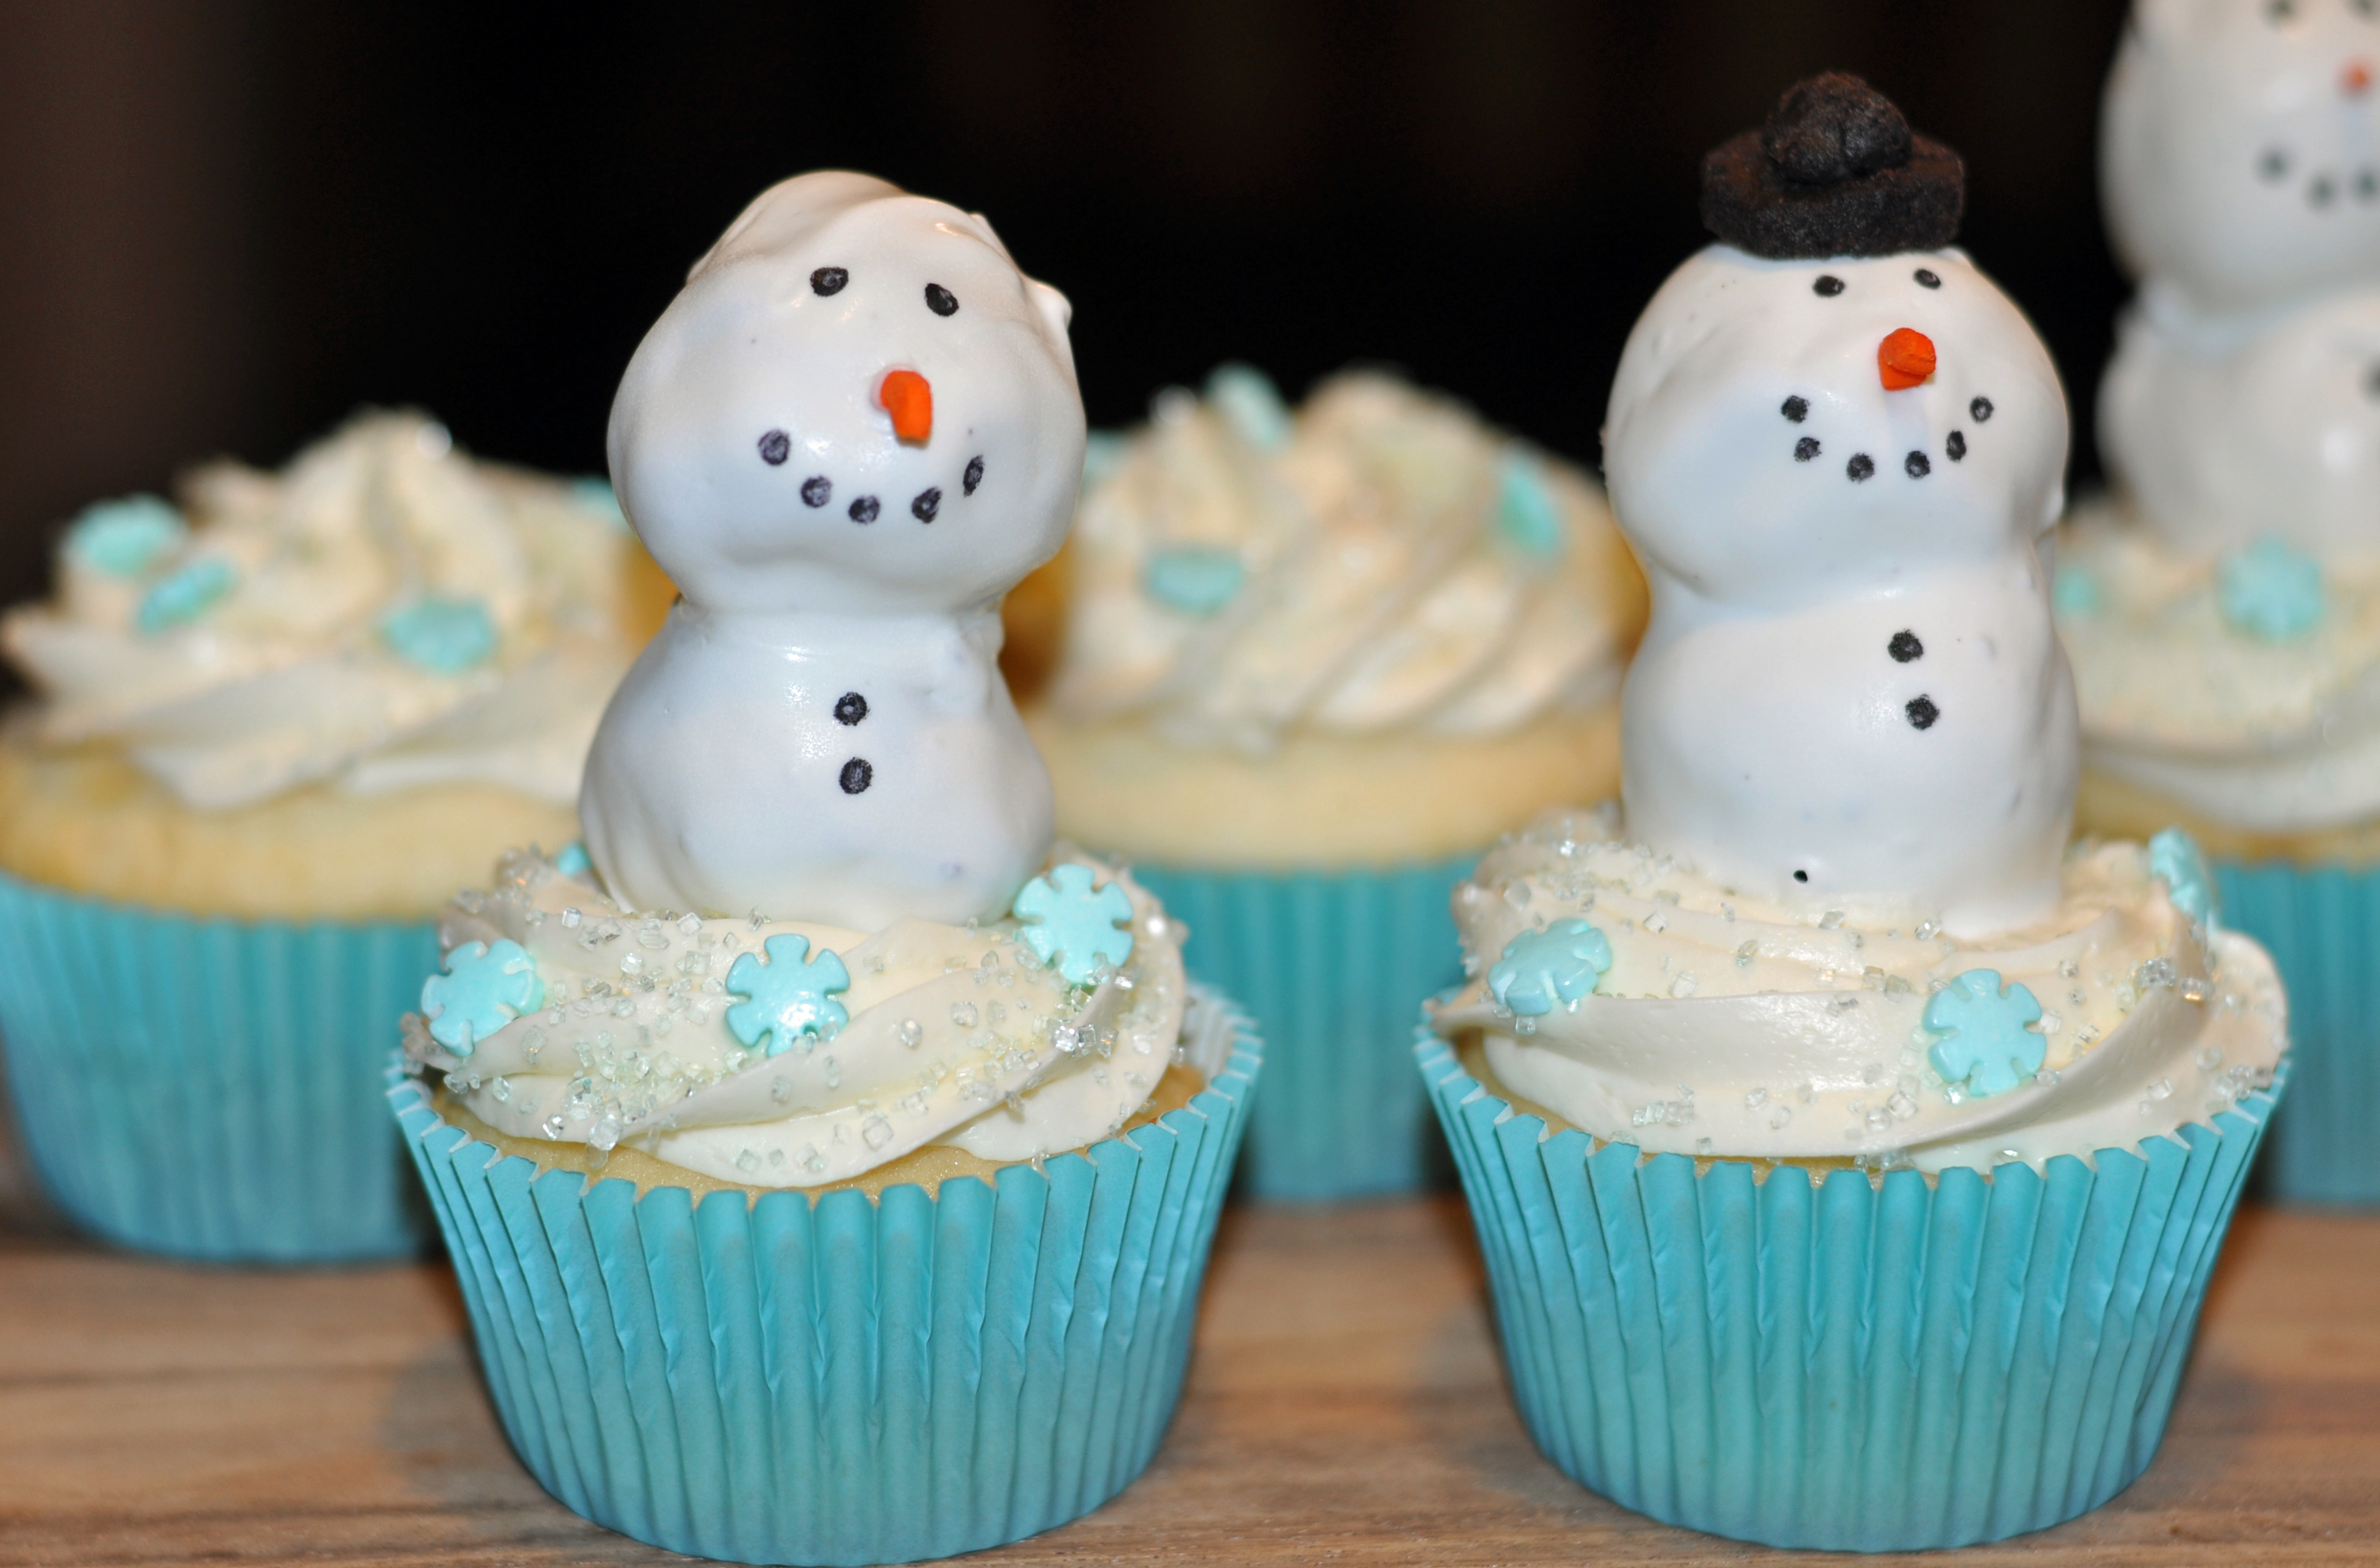 Snowman Cupcakes With Peanut Butter Oreo Truffles